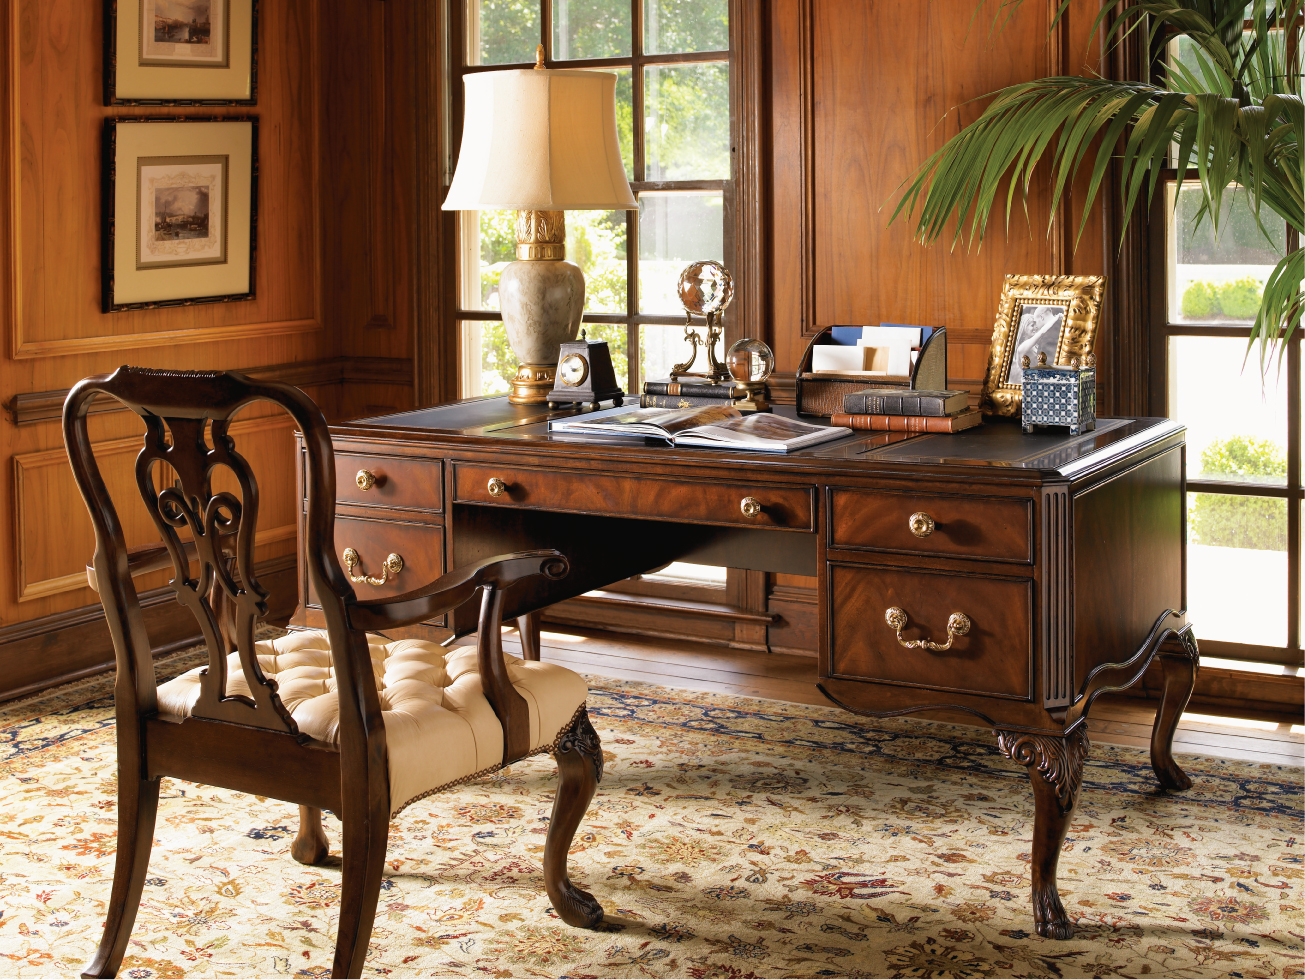 Home Office With Wood Paneling On Walls And Antique Office Furniture